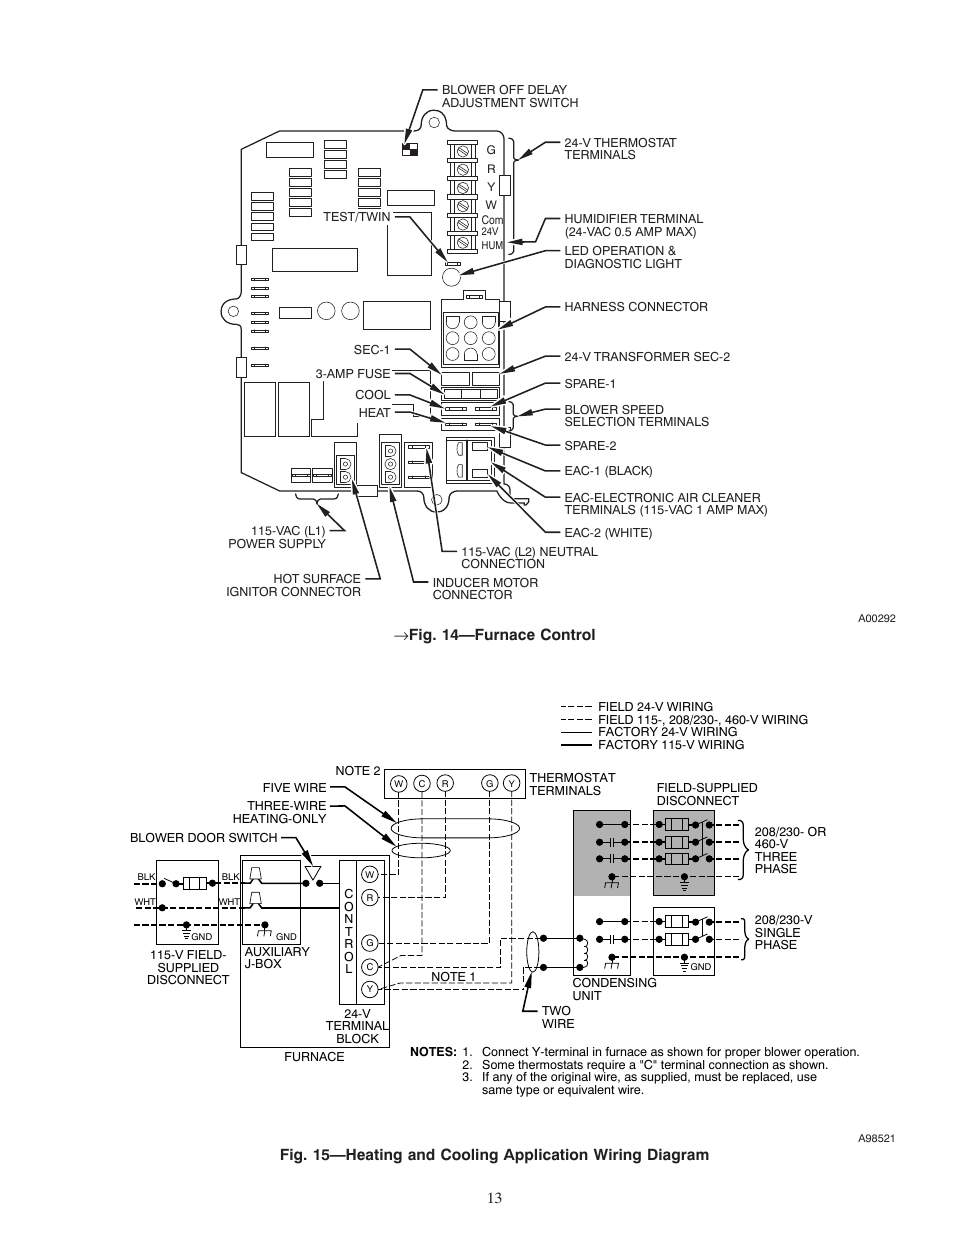 Carrier Weathermaker Bacnet Wiring Diagram - on